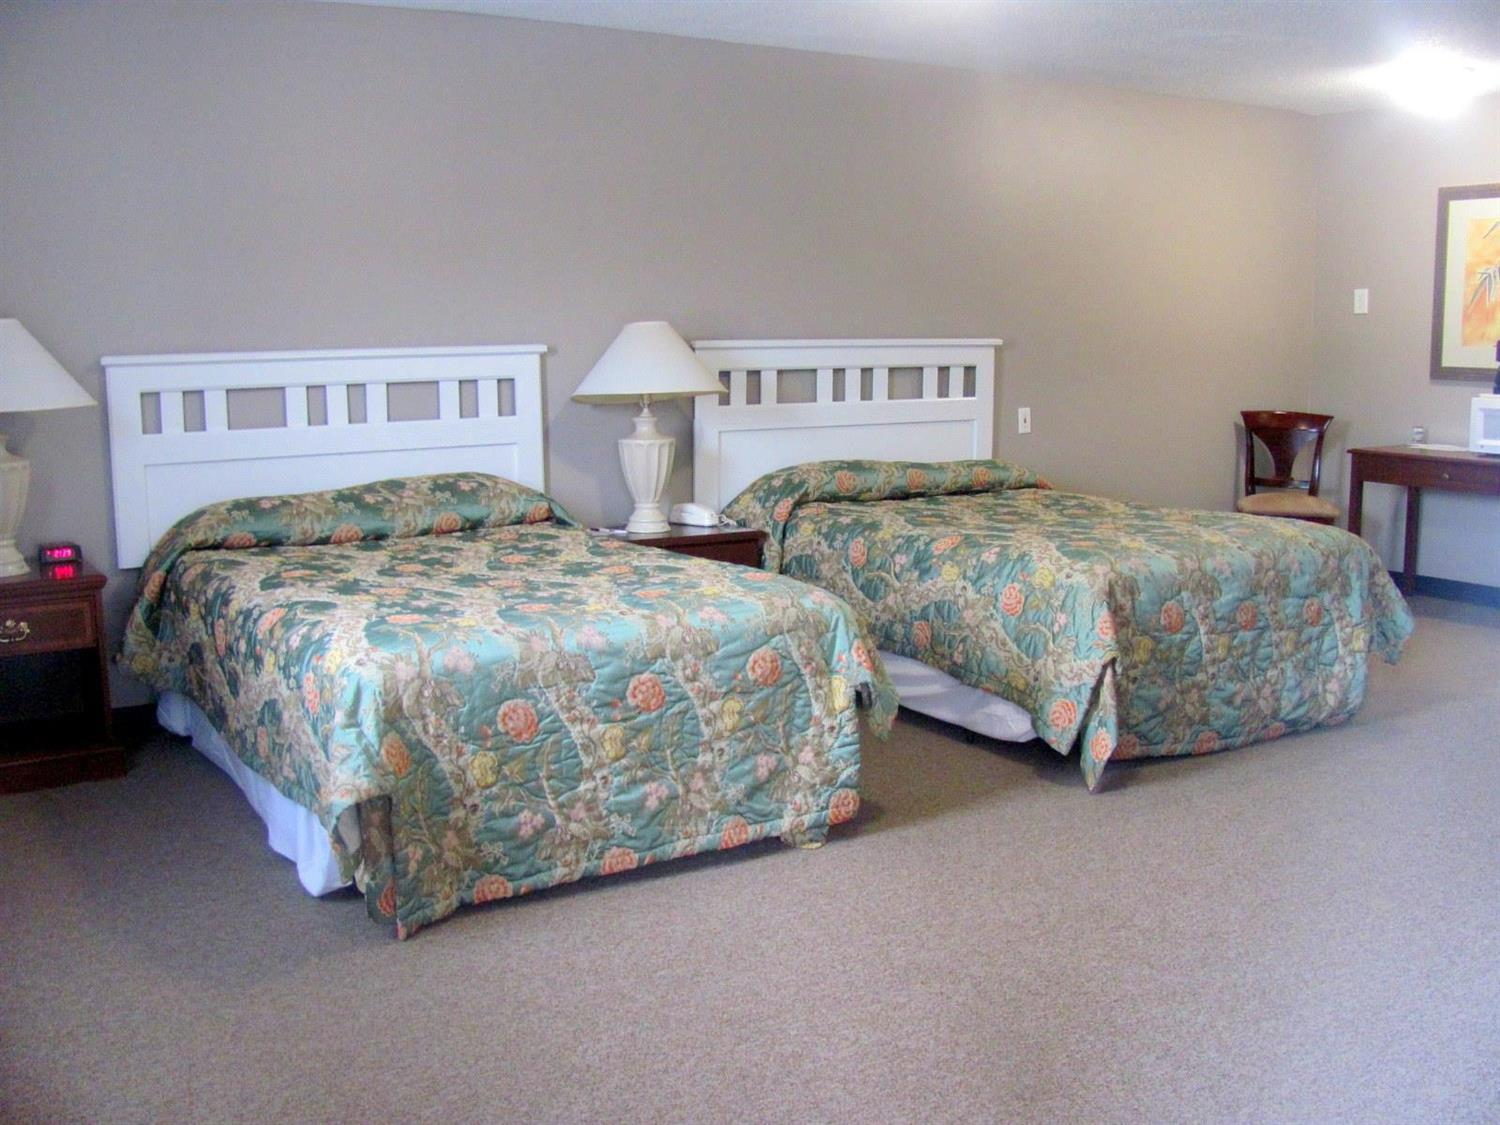 Country Hearth Inn & Suites-Gulf Shores Reviews